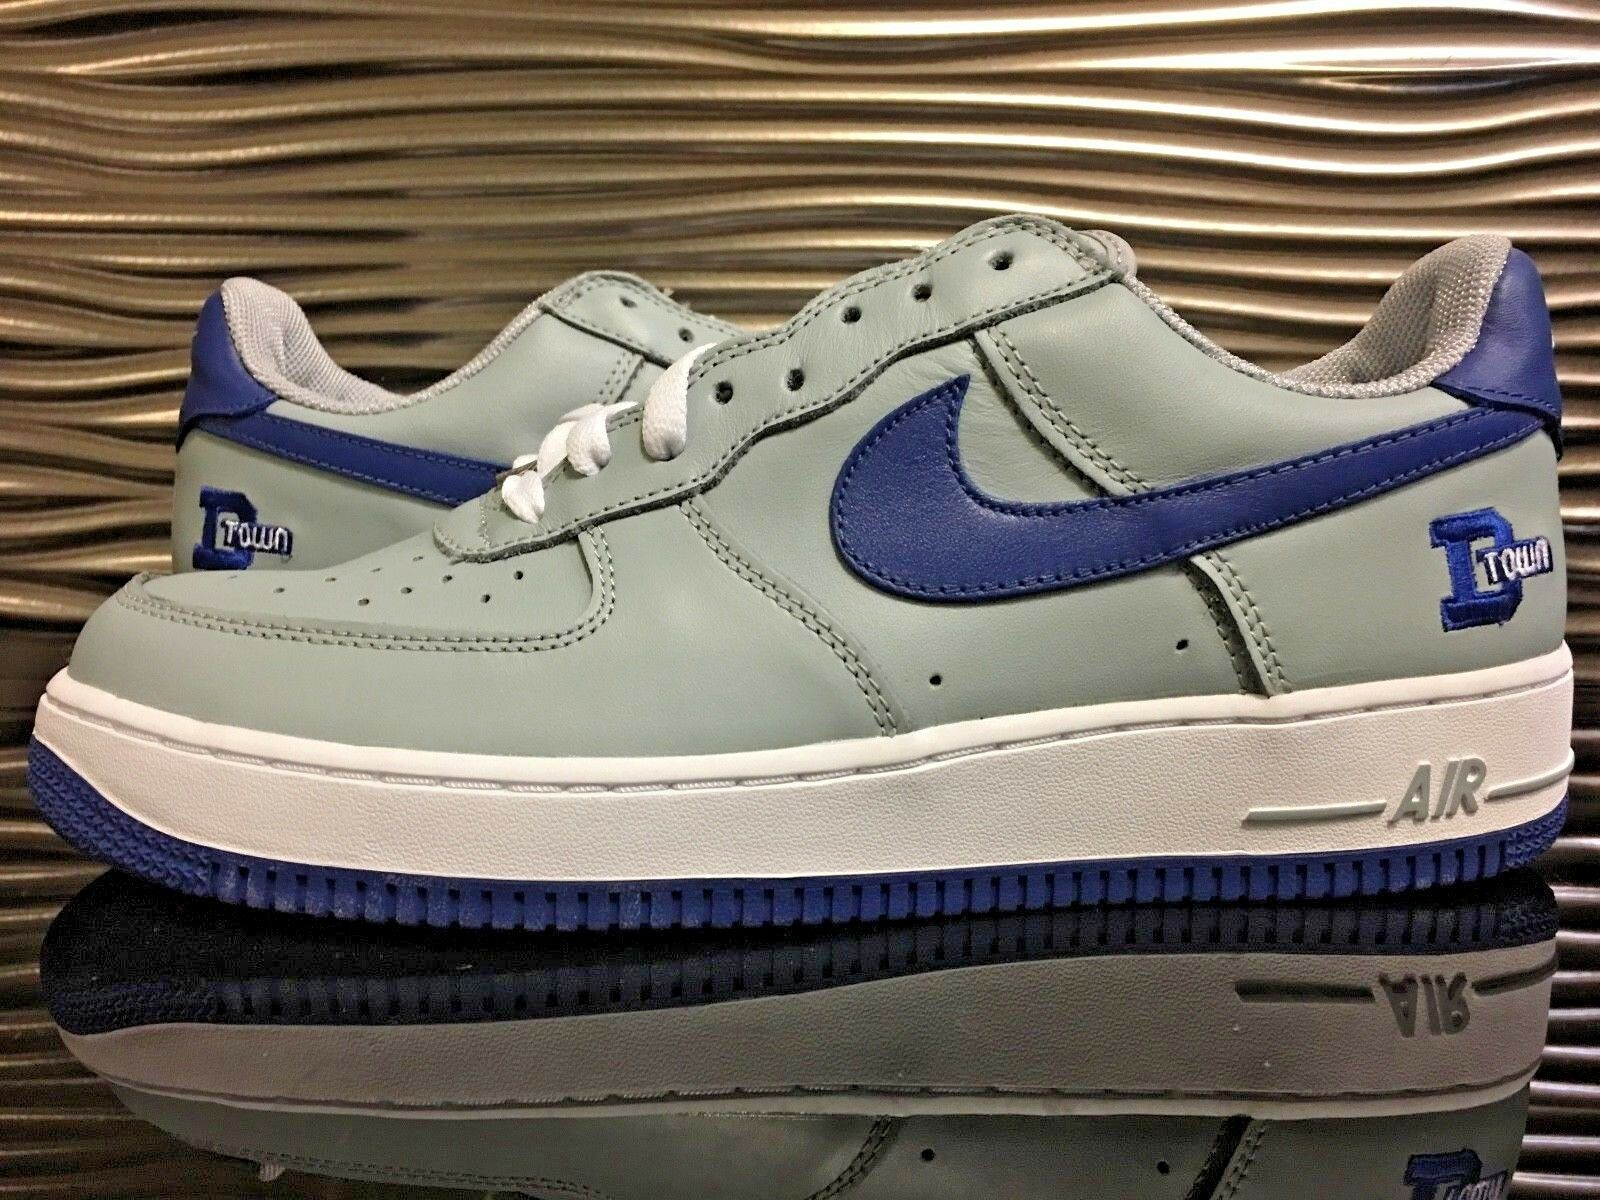 Nike Air Force 1 Low D-TOWN DS Men's Size 11.5  Silver Sport Royal-White